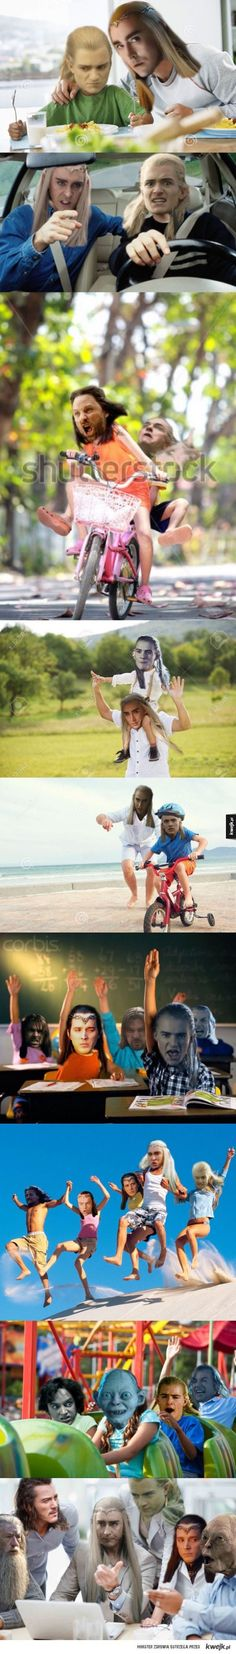 The best ones are Gollum on the ride and Legolas with the bike helmet on...